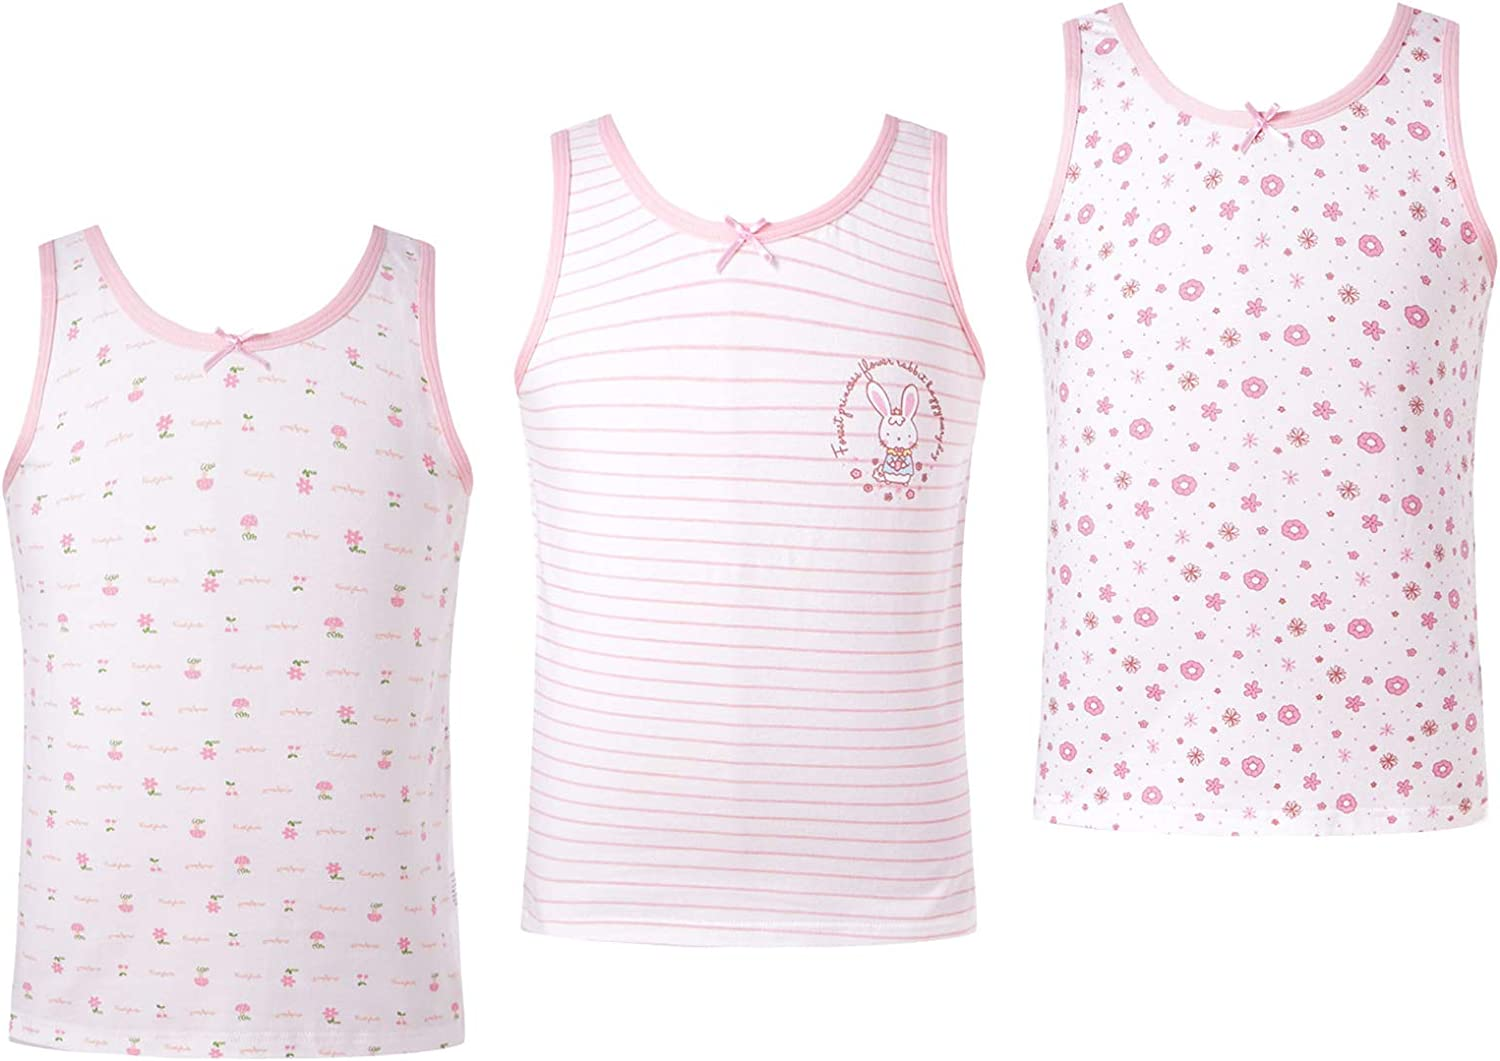 Jowowha Little Big Kids Girls Cotton Print Tank Tops Summer Camisole Undershirt Casual Outfit